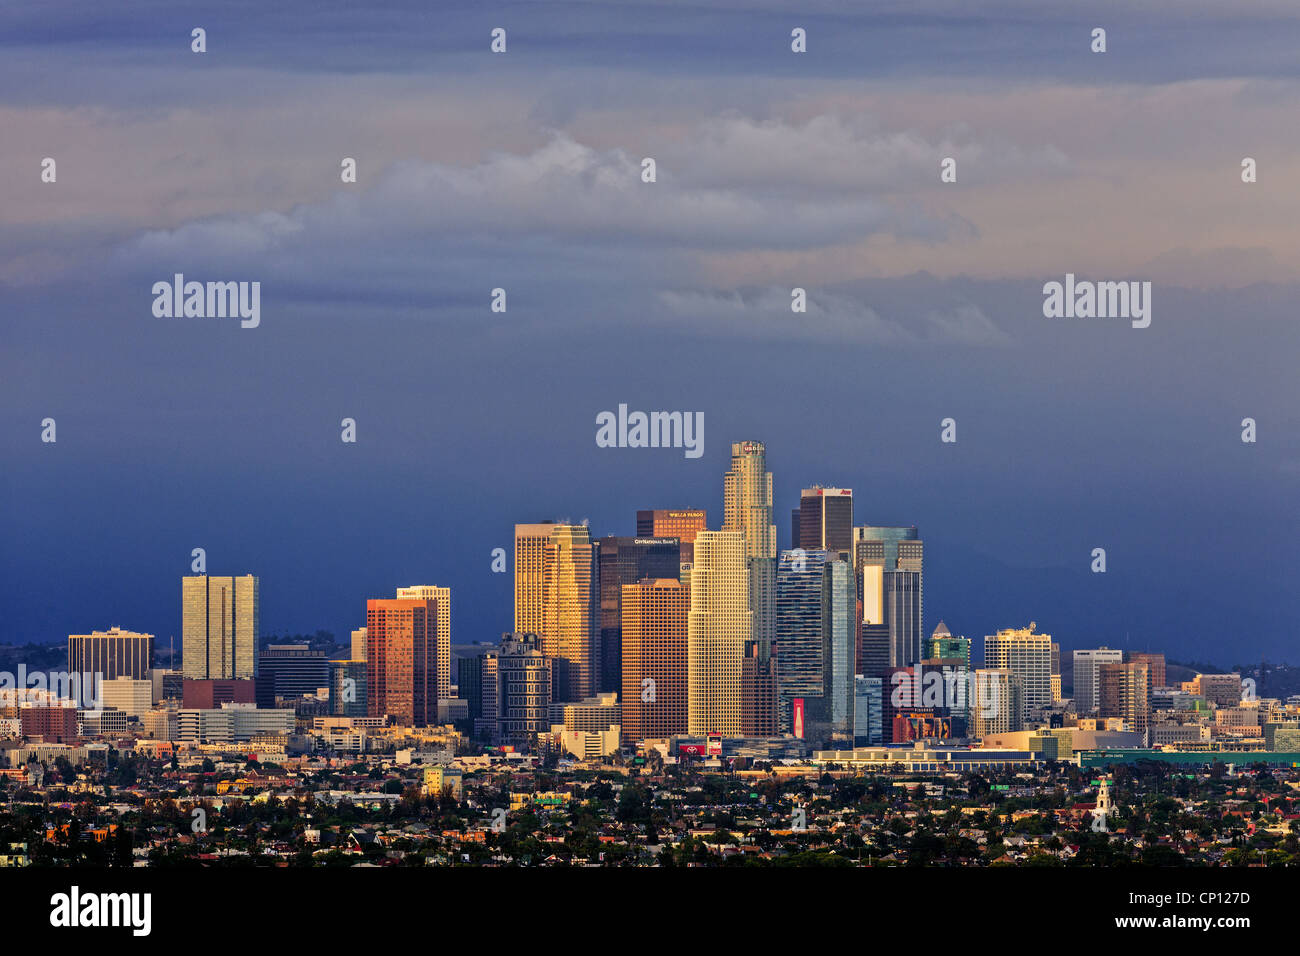 Downtown Los Angeles skyline at dusk with storm clearing in the distance Stock Photo